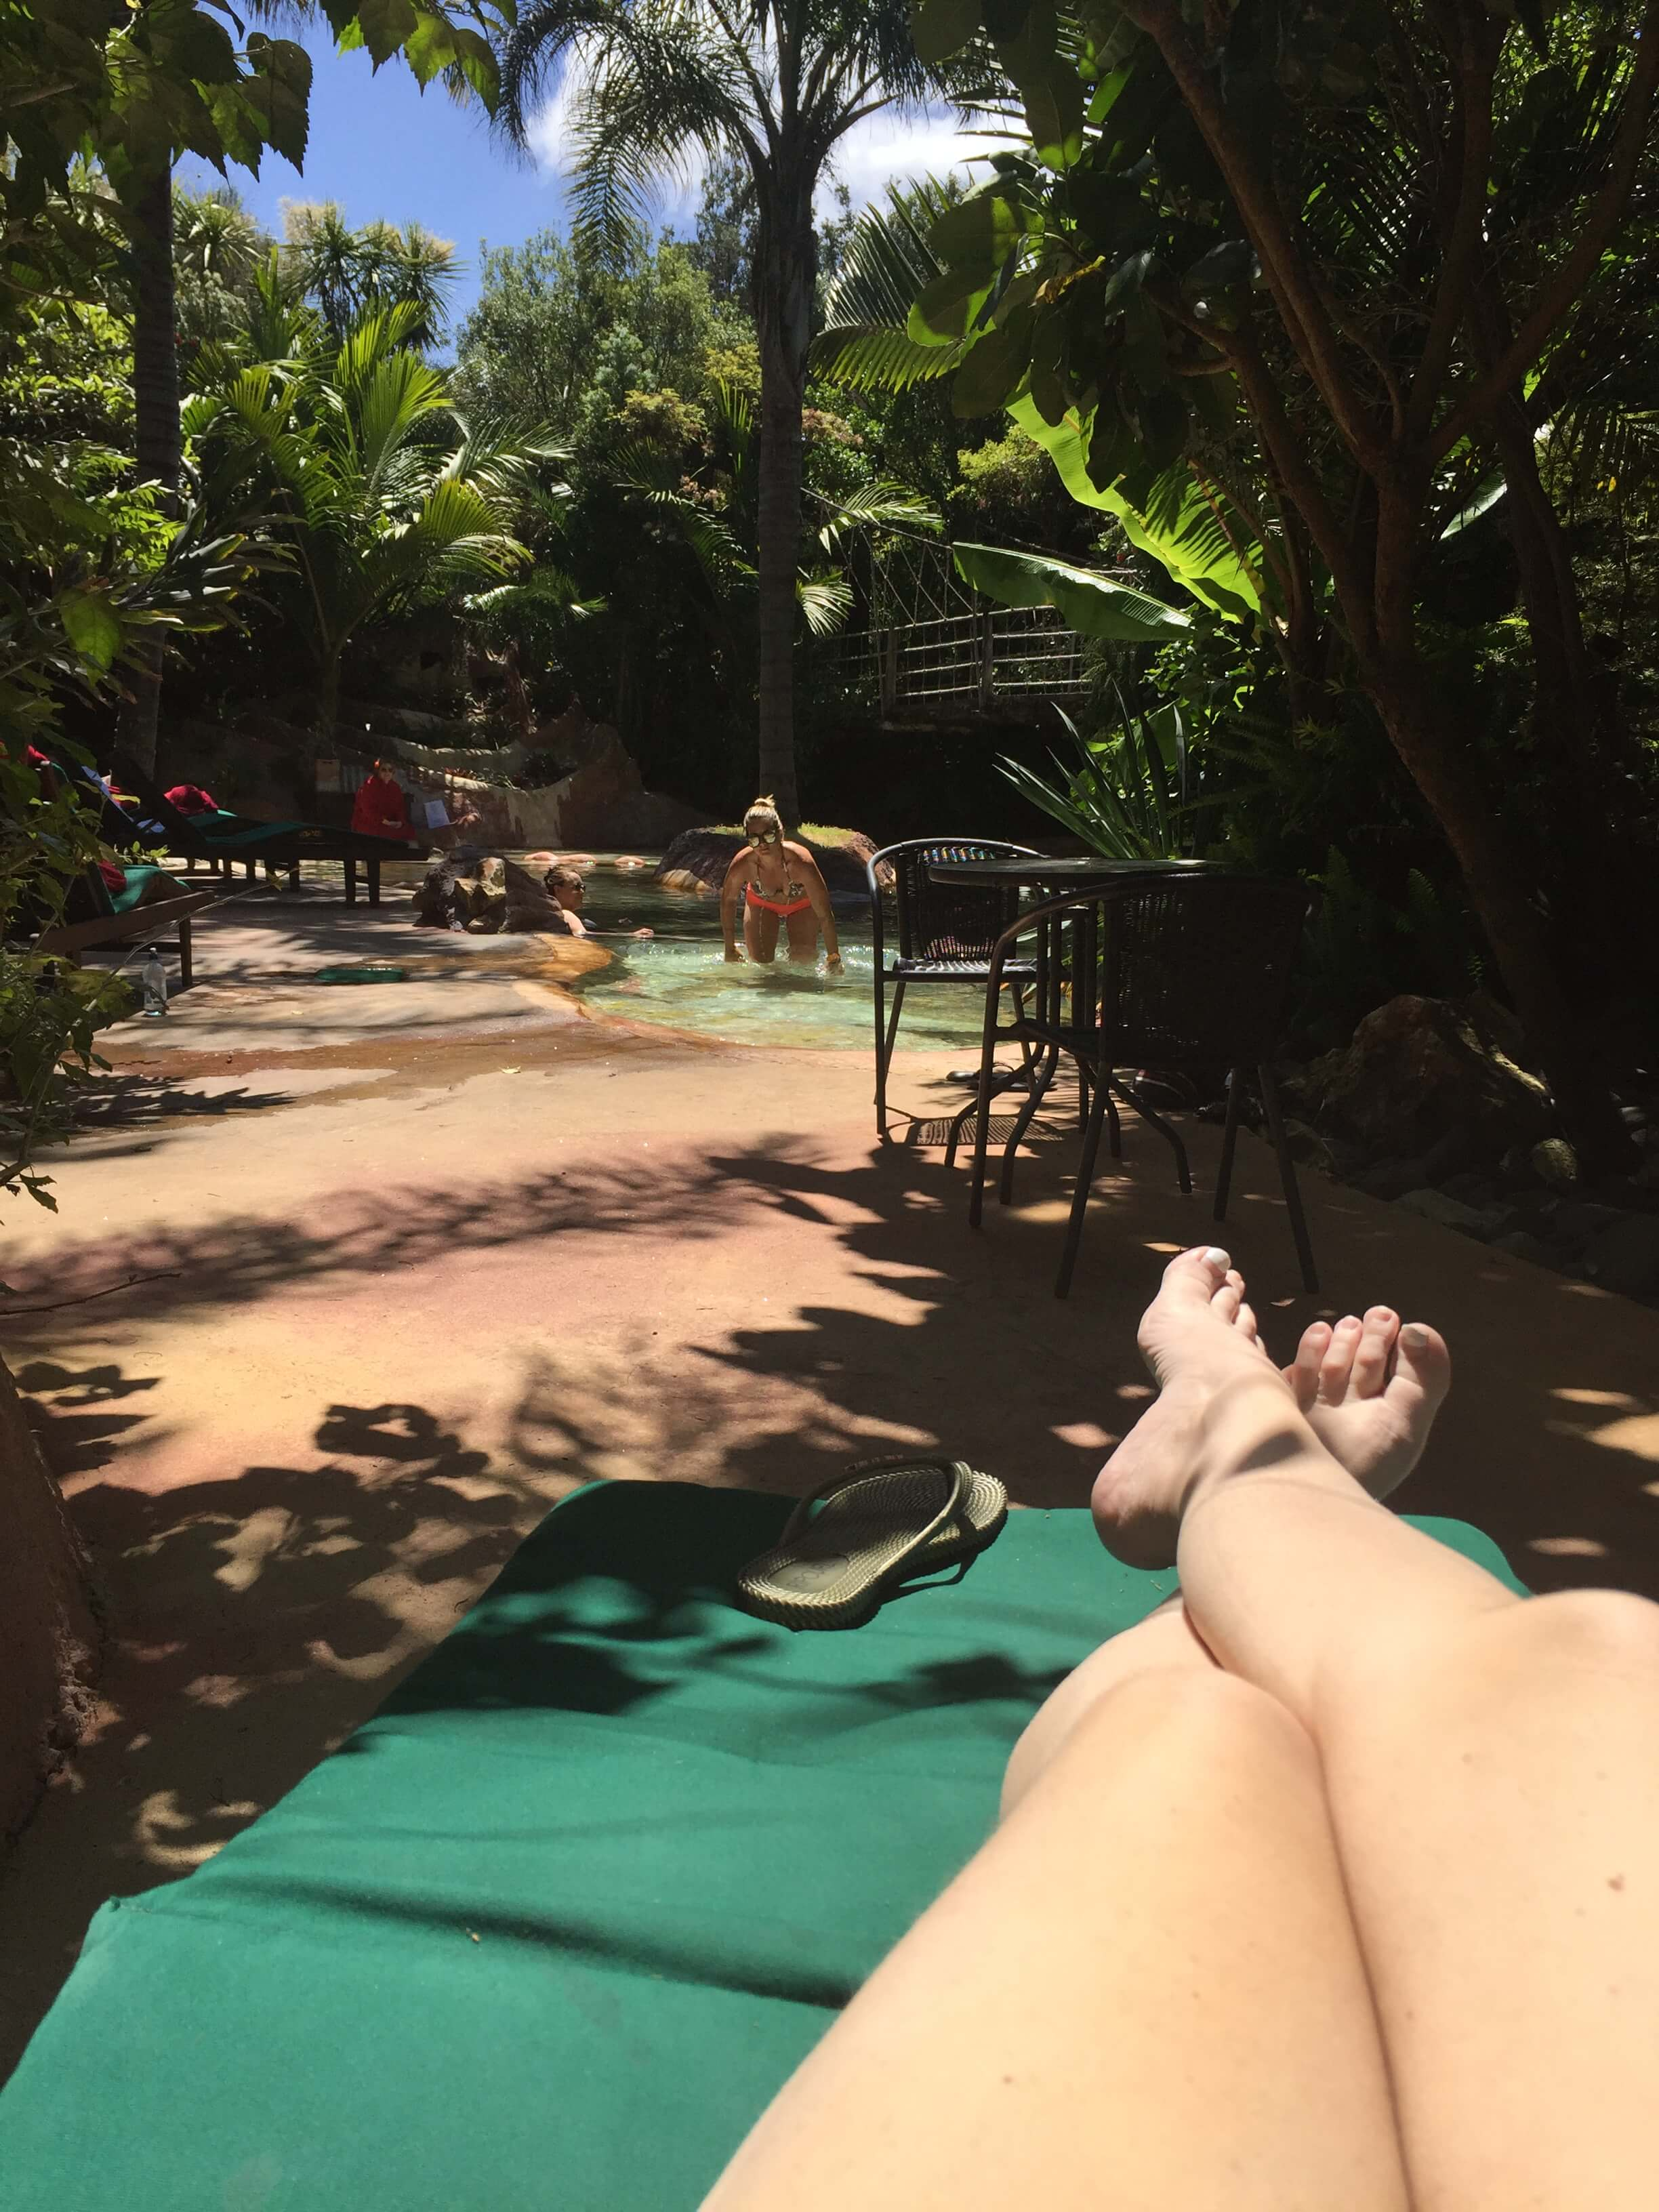 A woman with legs out at a resort